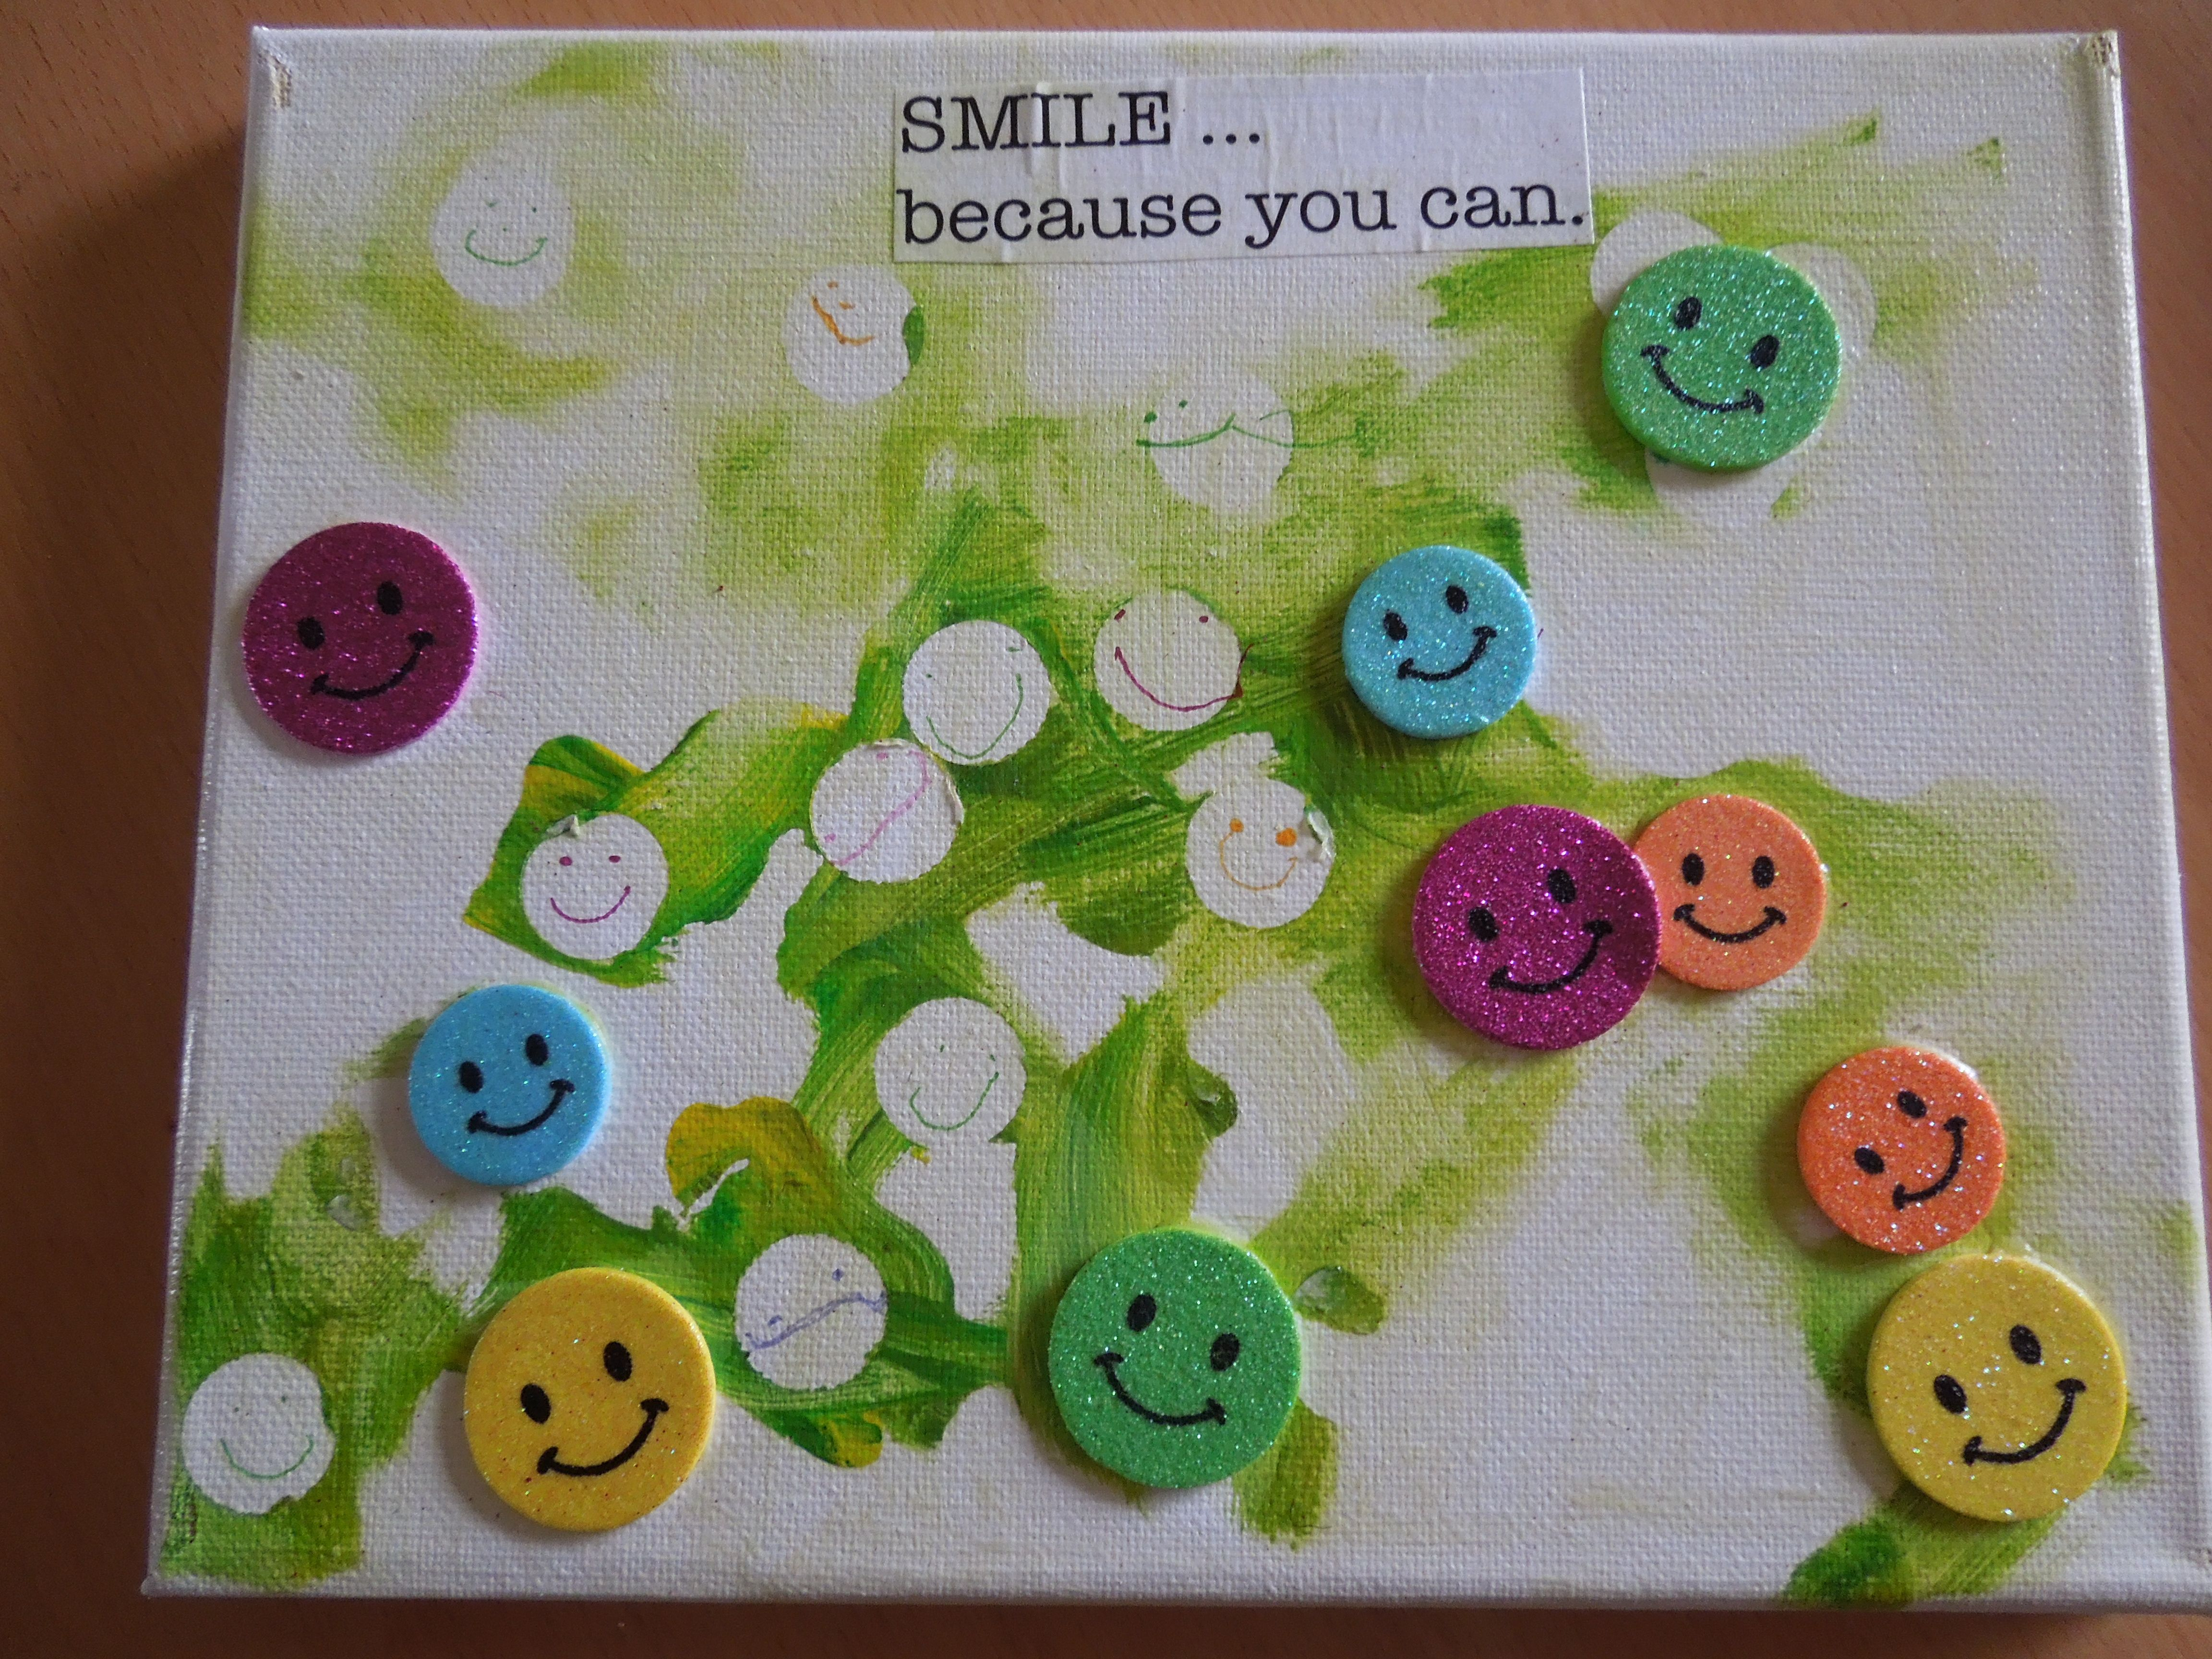 Sticker Dot Resist Painting ... Share A Smile!